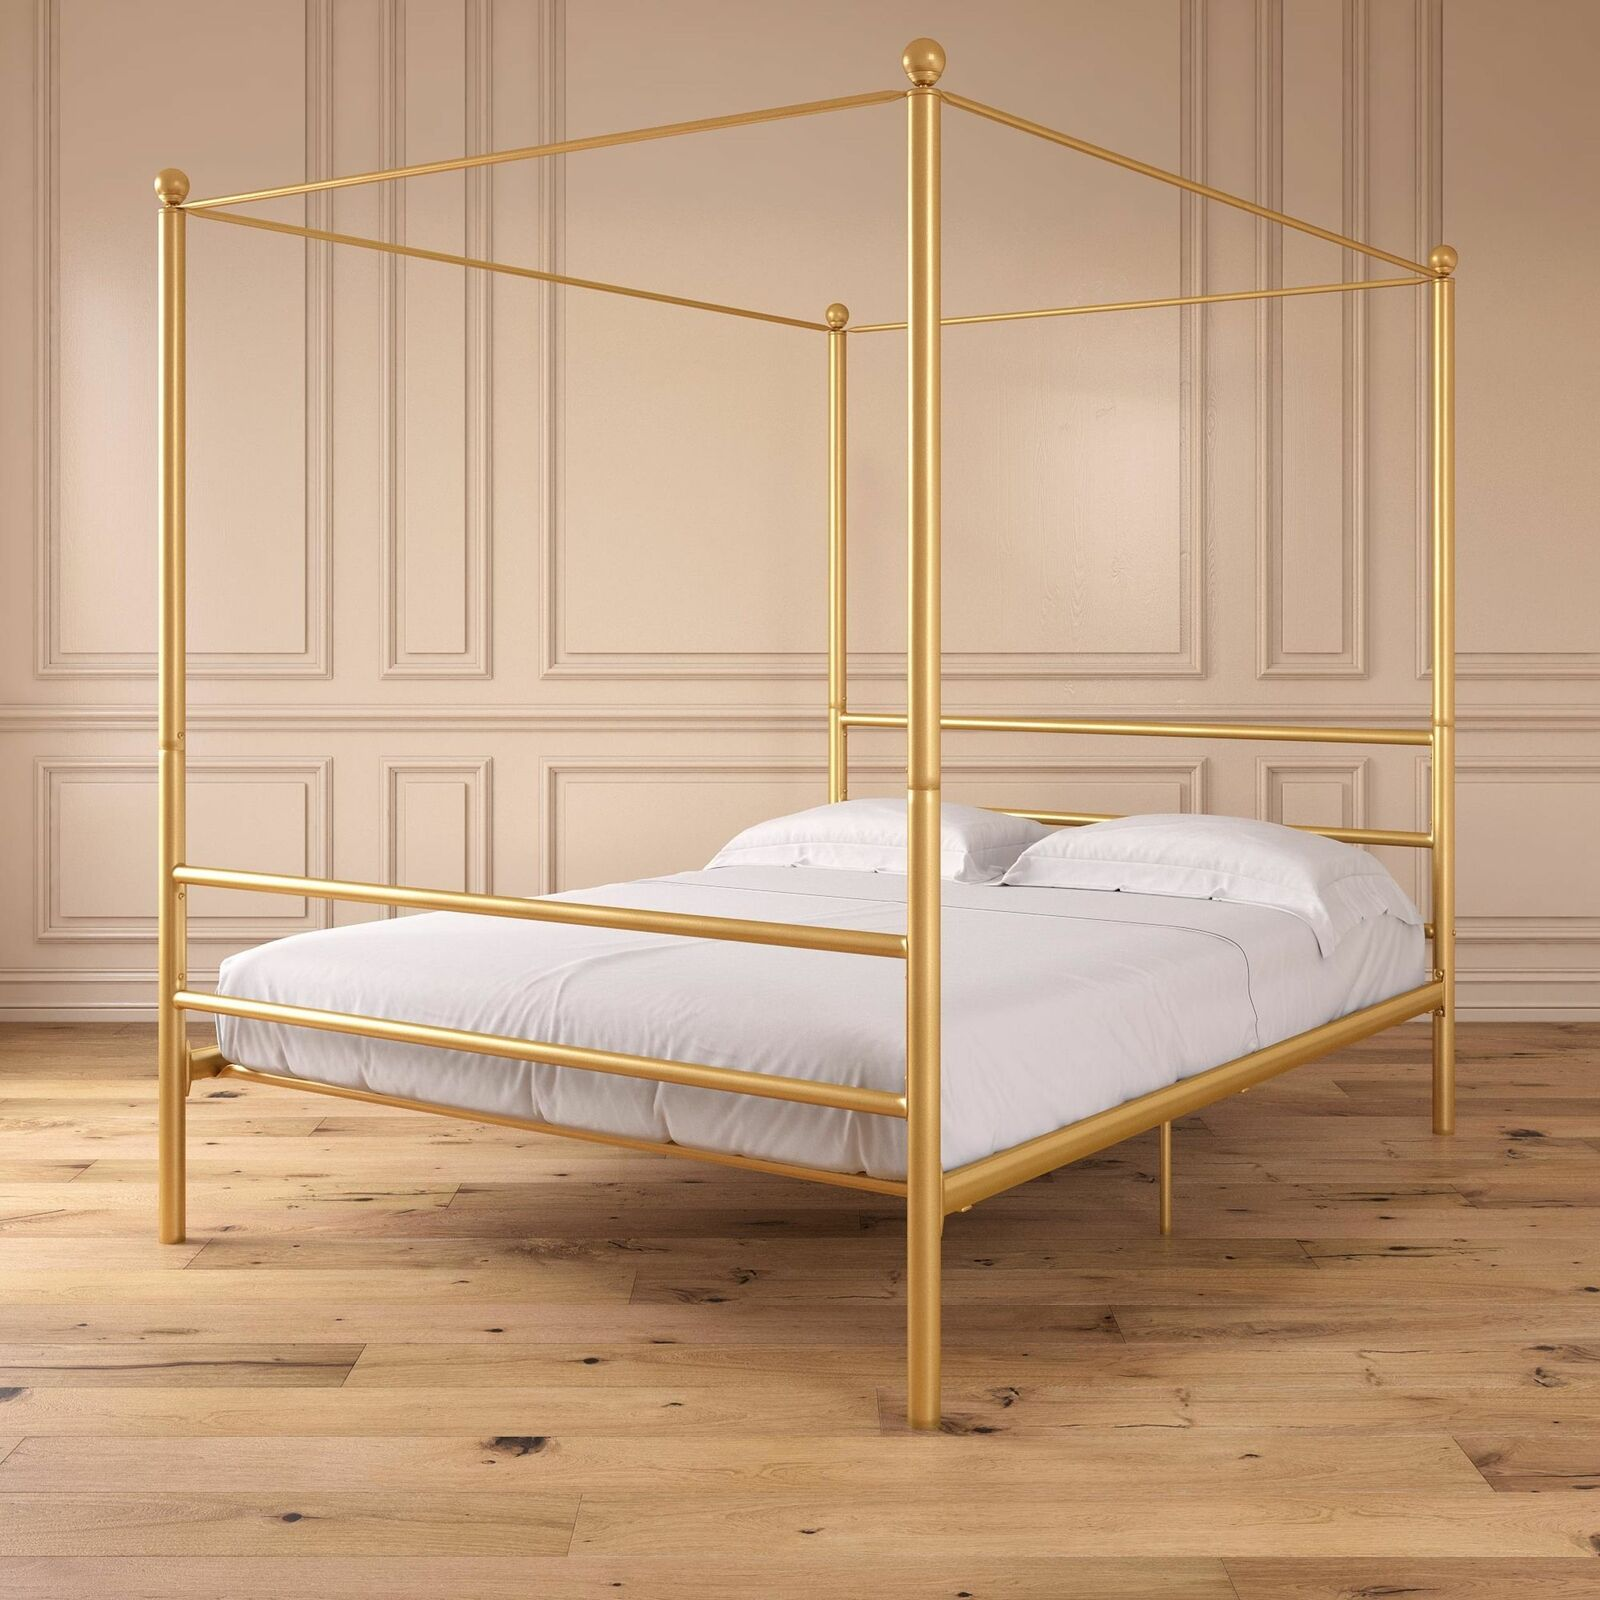 Picture of: Queen Size Gold Metal Steel Canopy Bed Frame Modern Bedroom Furniture For Sale Online